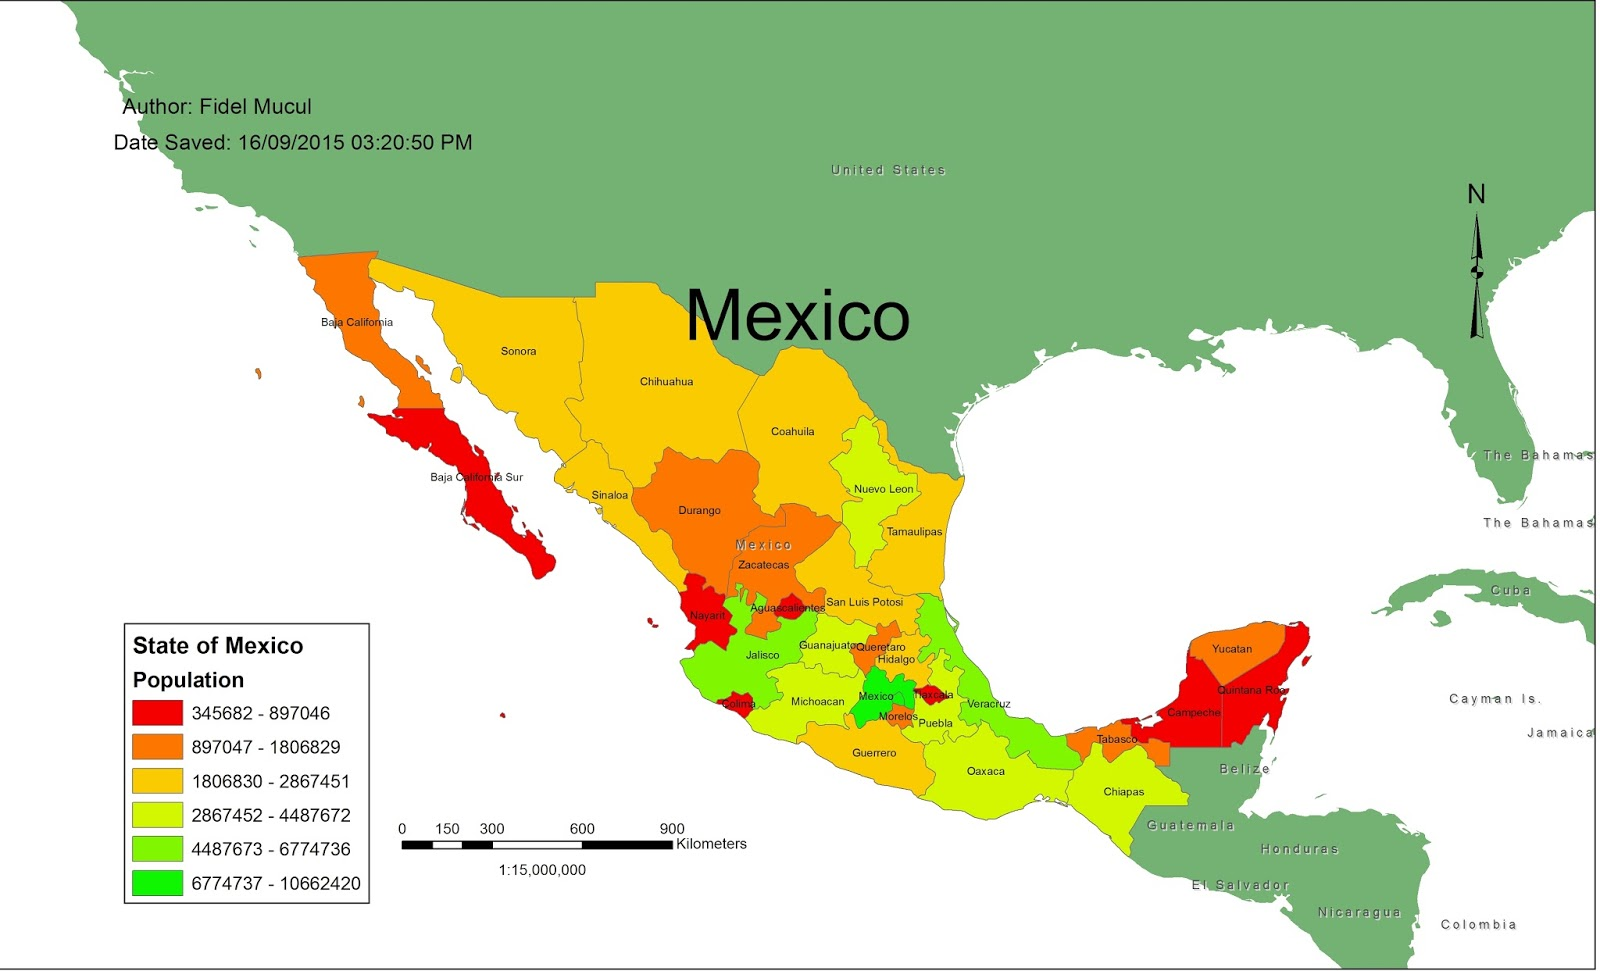 Fidel S Gis Explorations Map Of Mexico